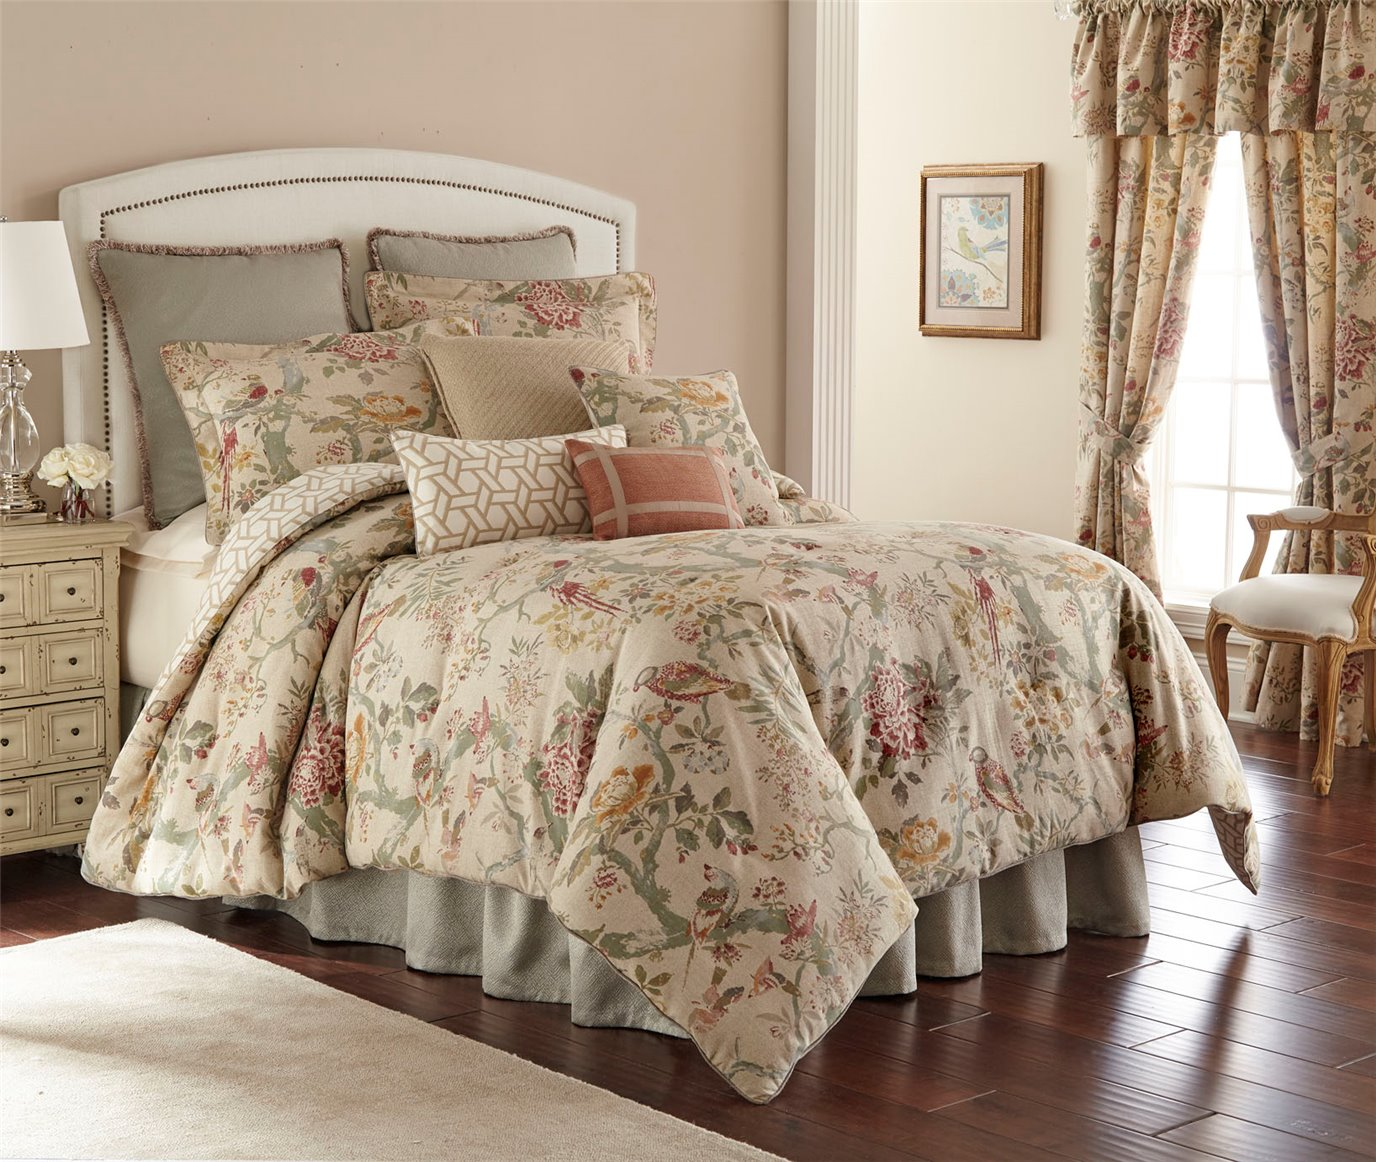 Biccari Floral 4 Piece Queen Comforter Set